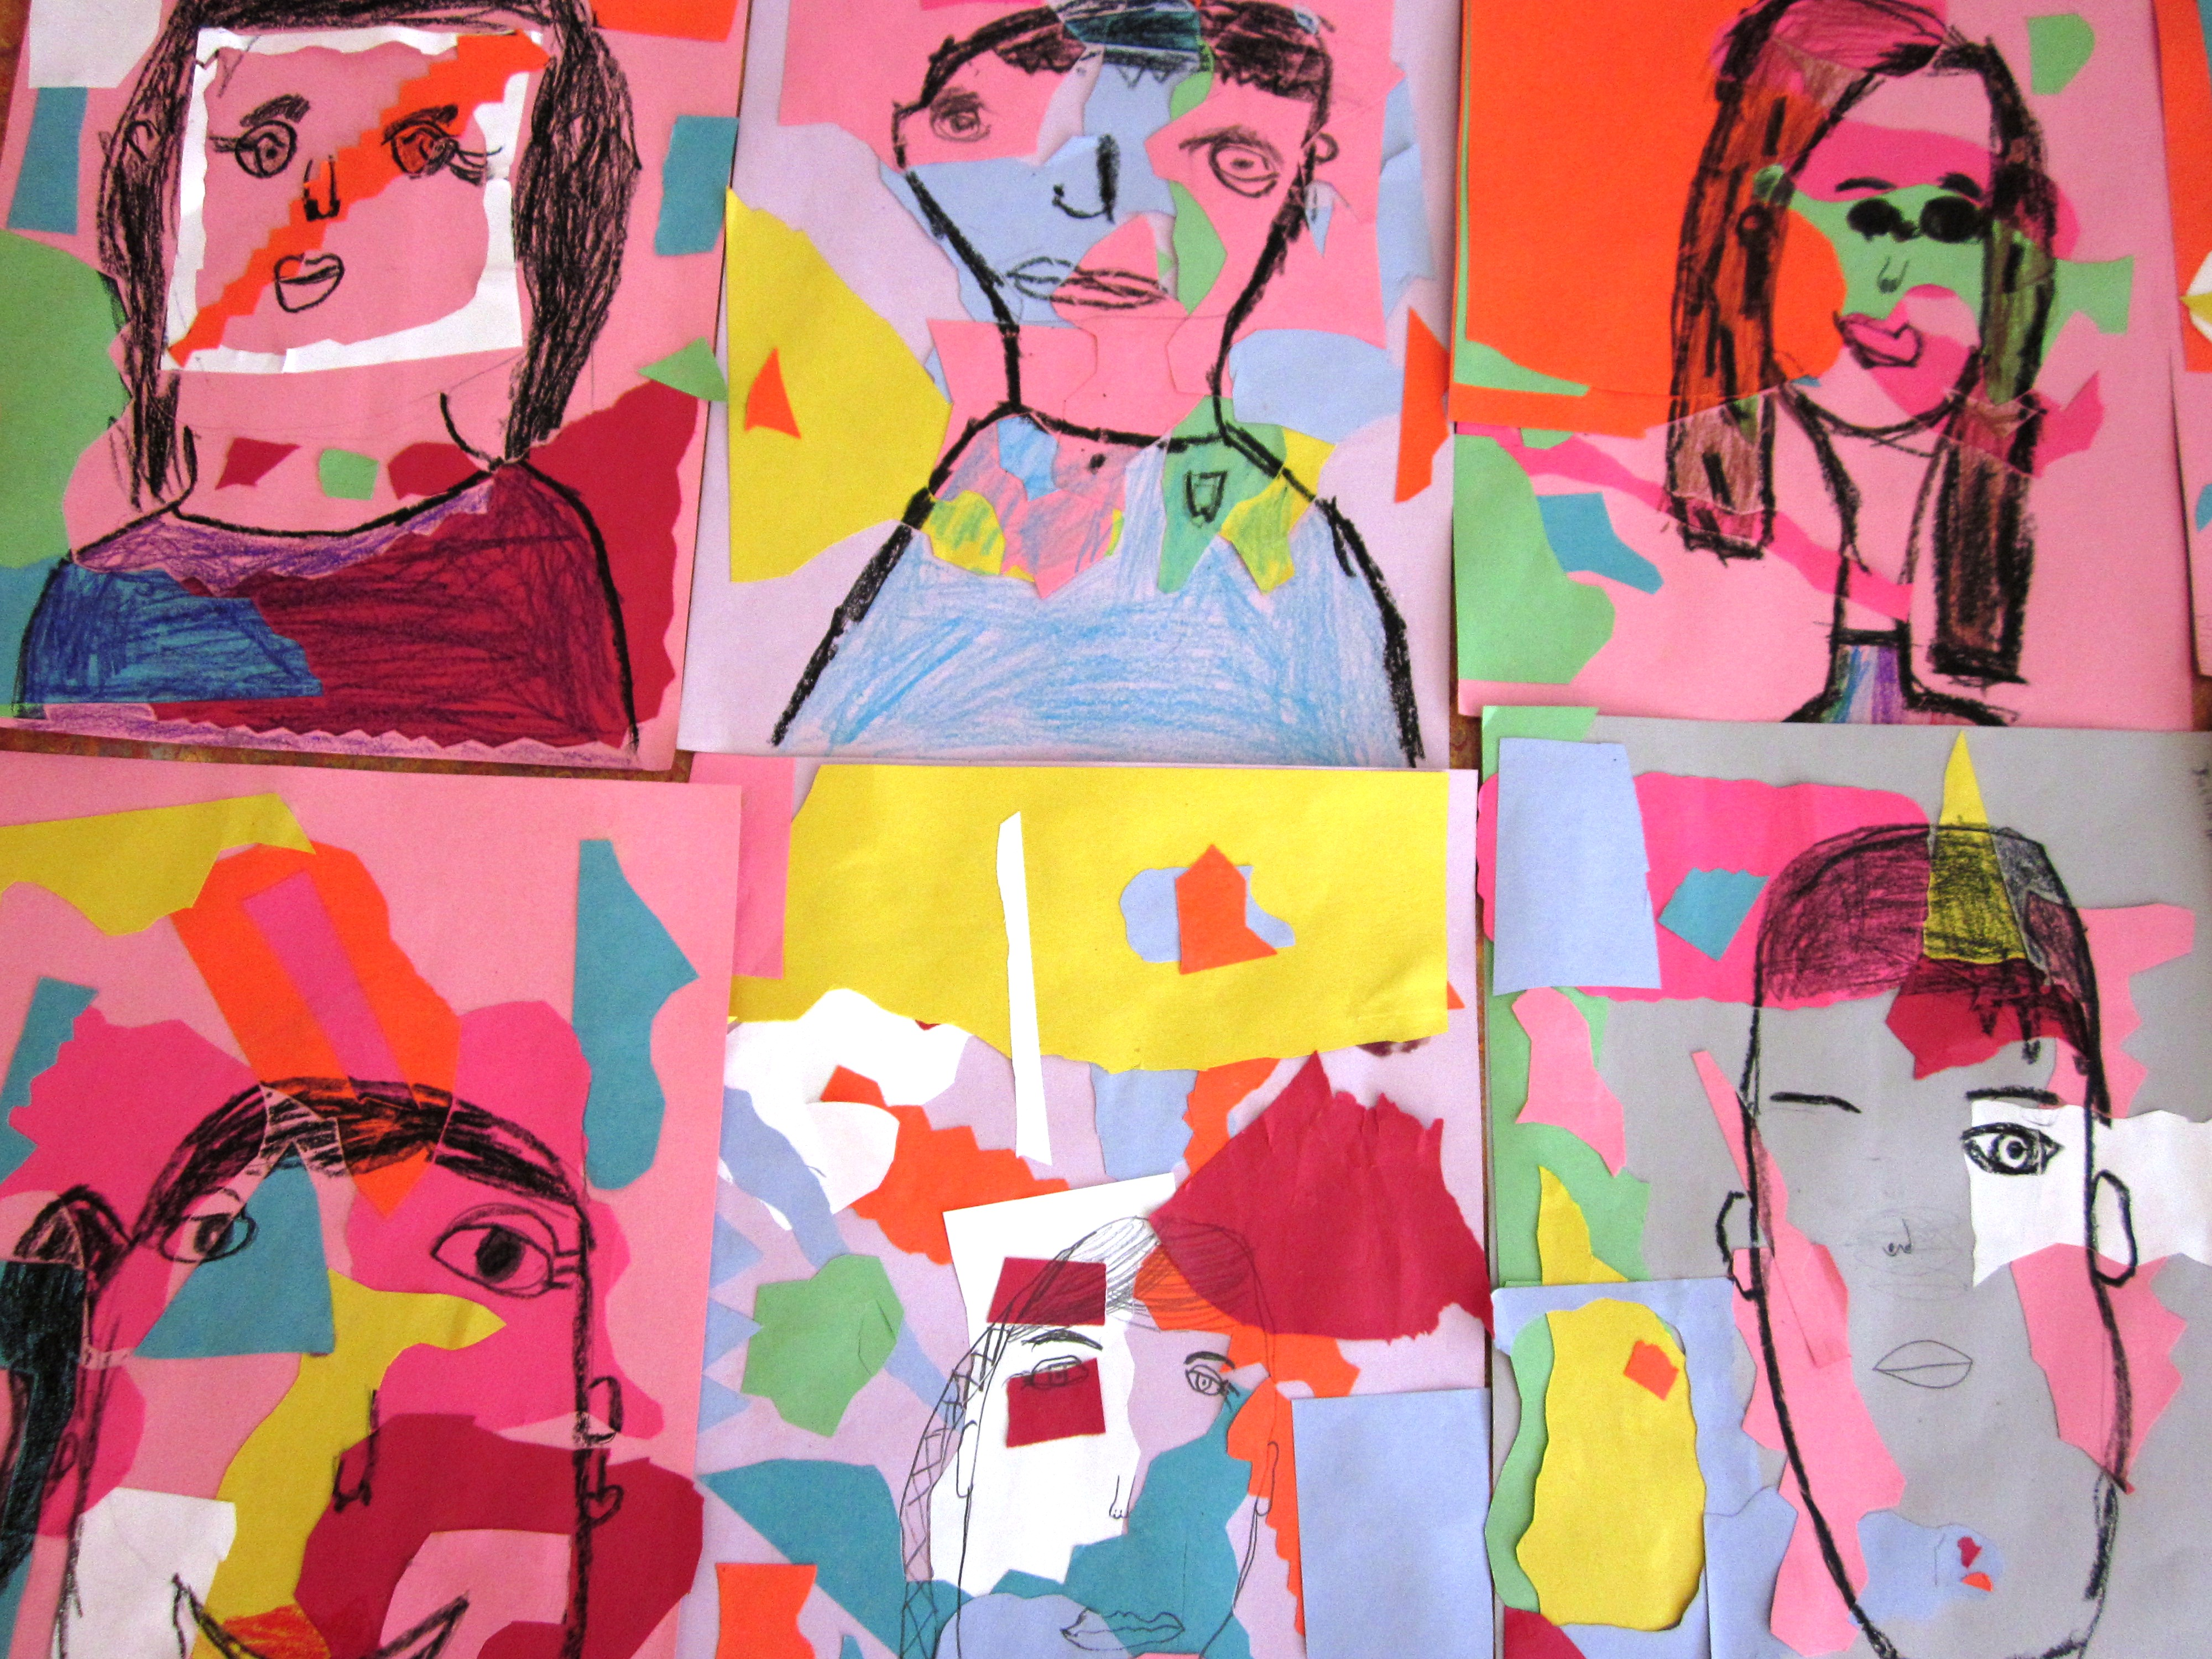 matisse inspired self portraits in grade one art lessons for kids